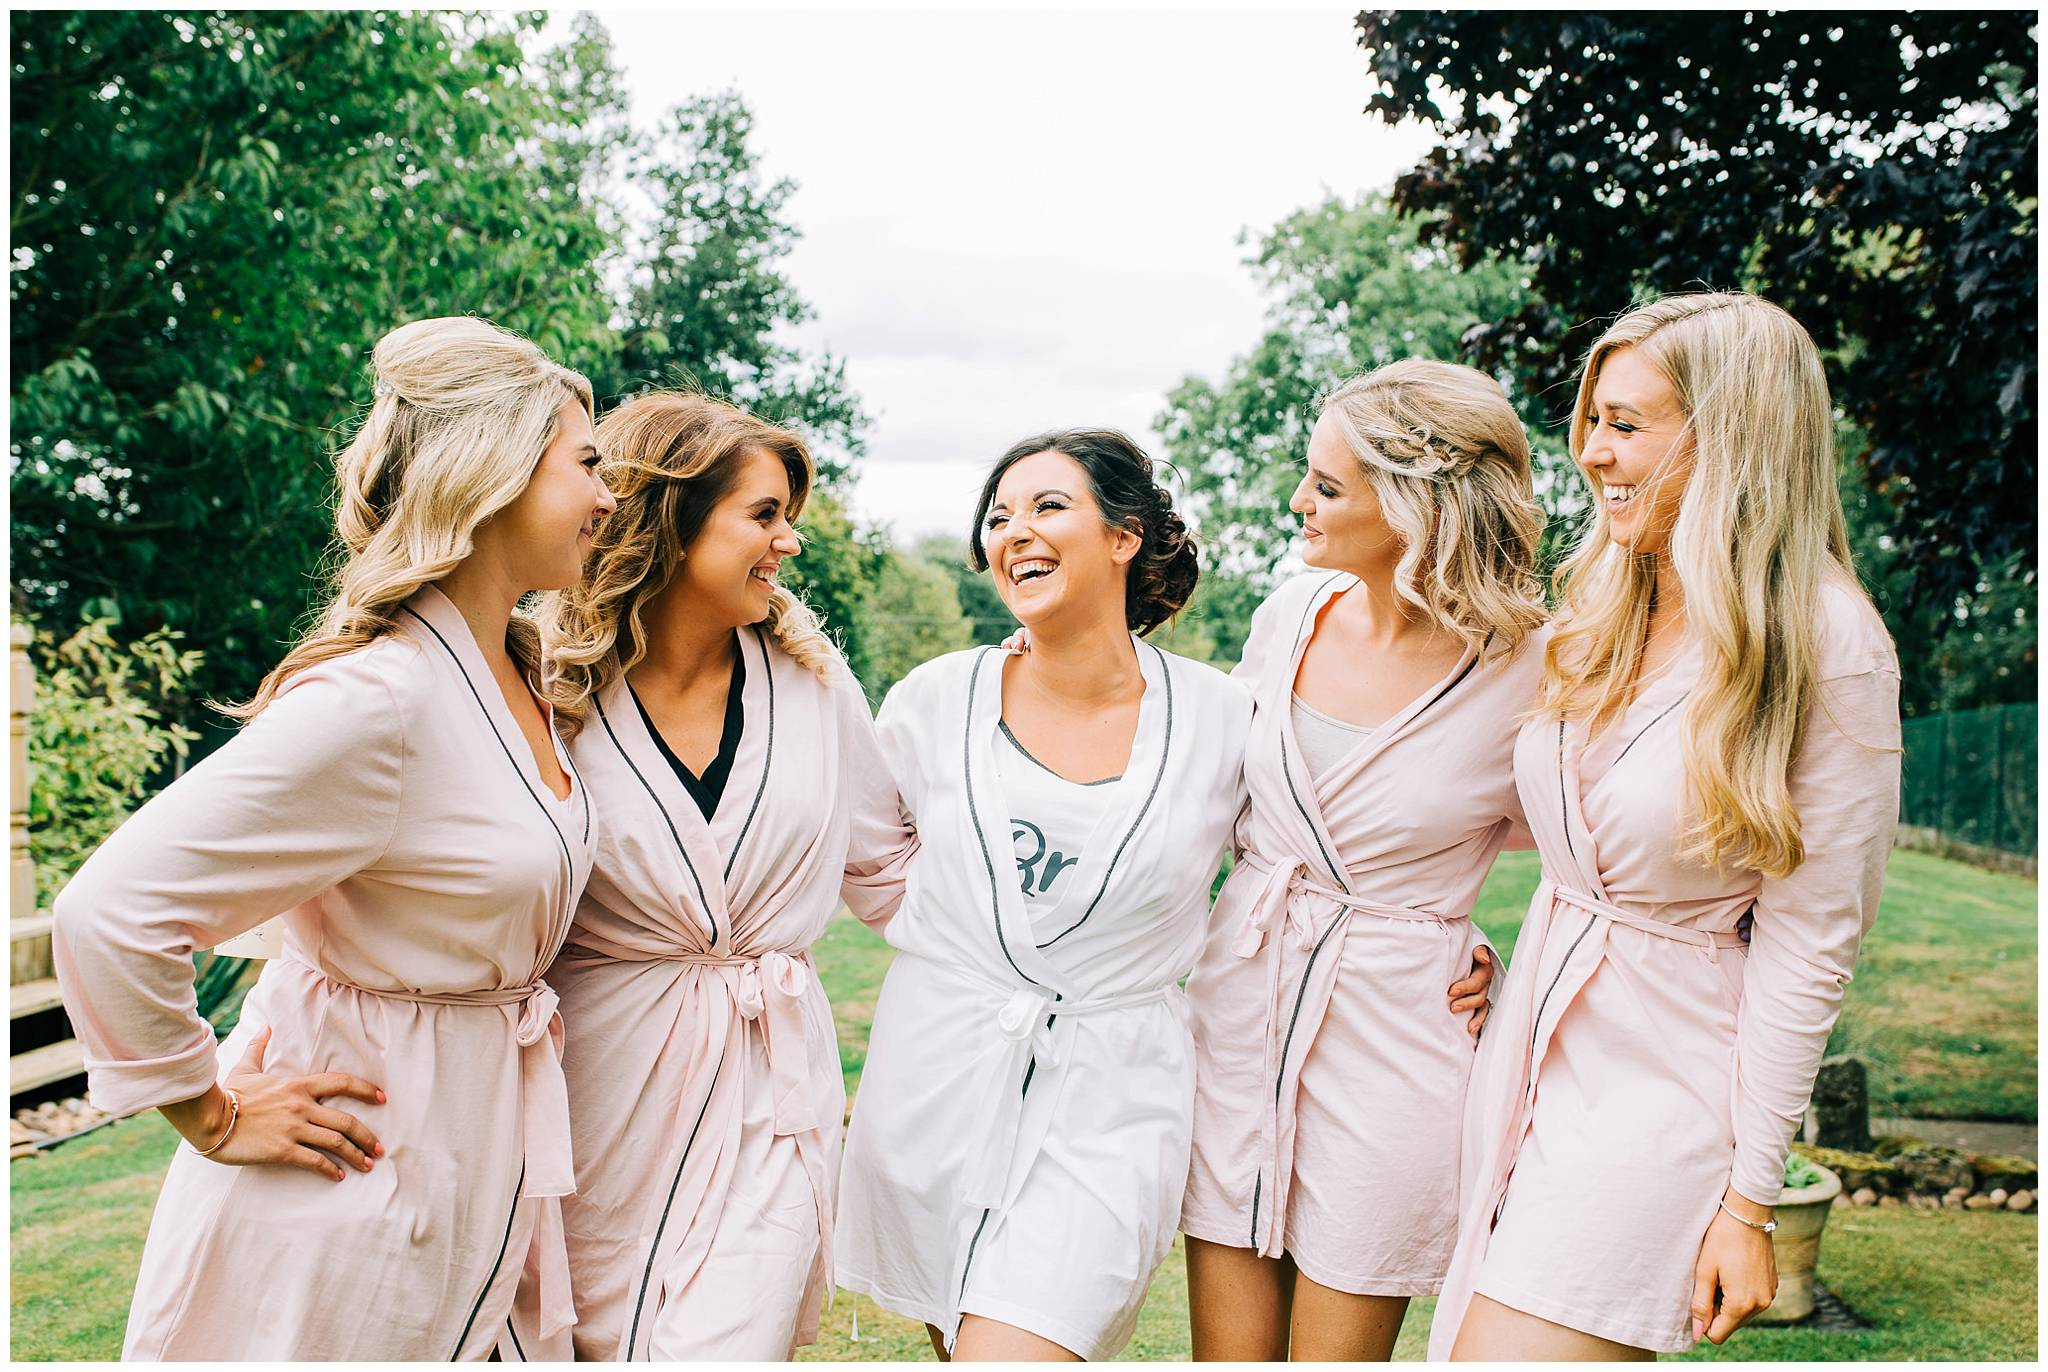 Chic Summer Wedding at Hazel Gap Barn - Nottinghamshire Photographer6.jpg